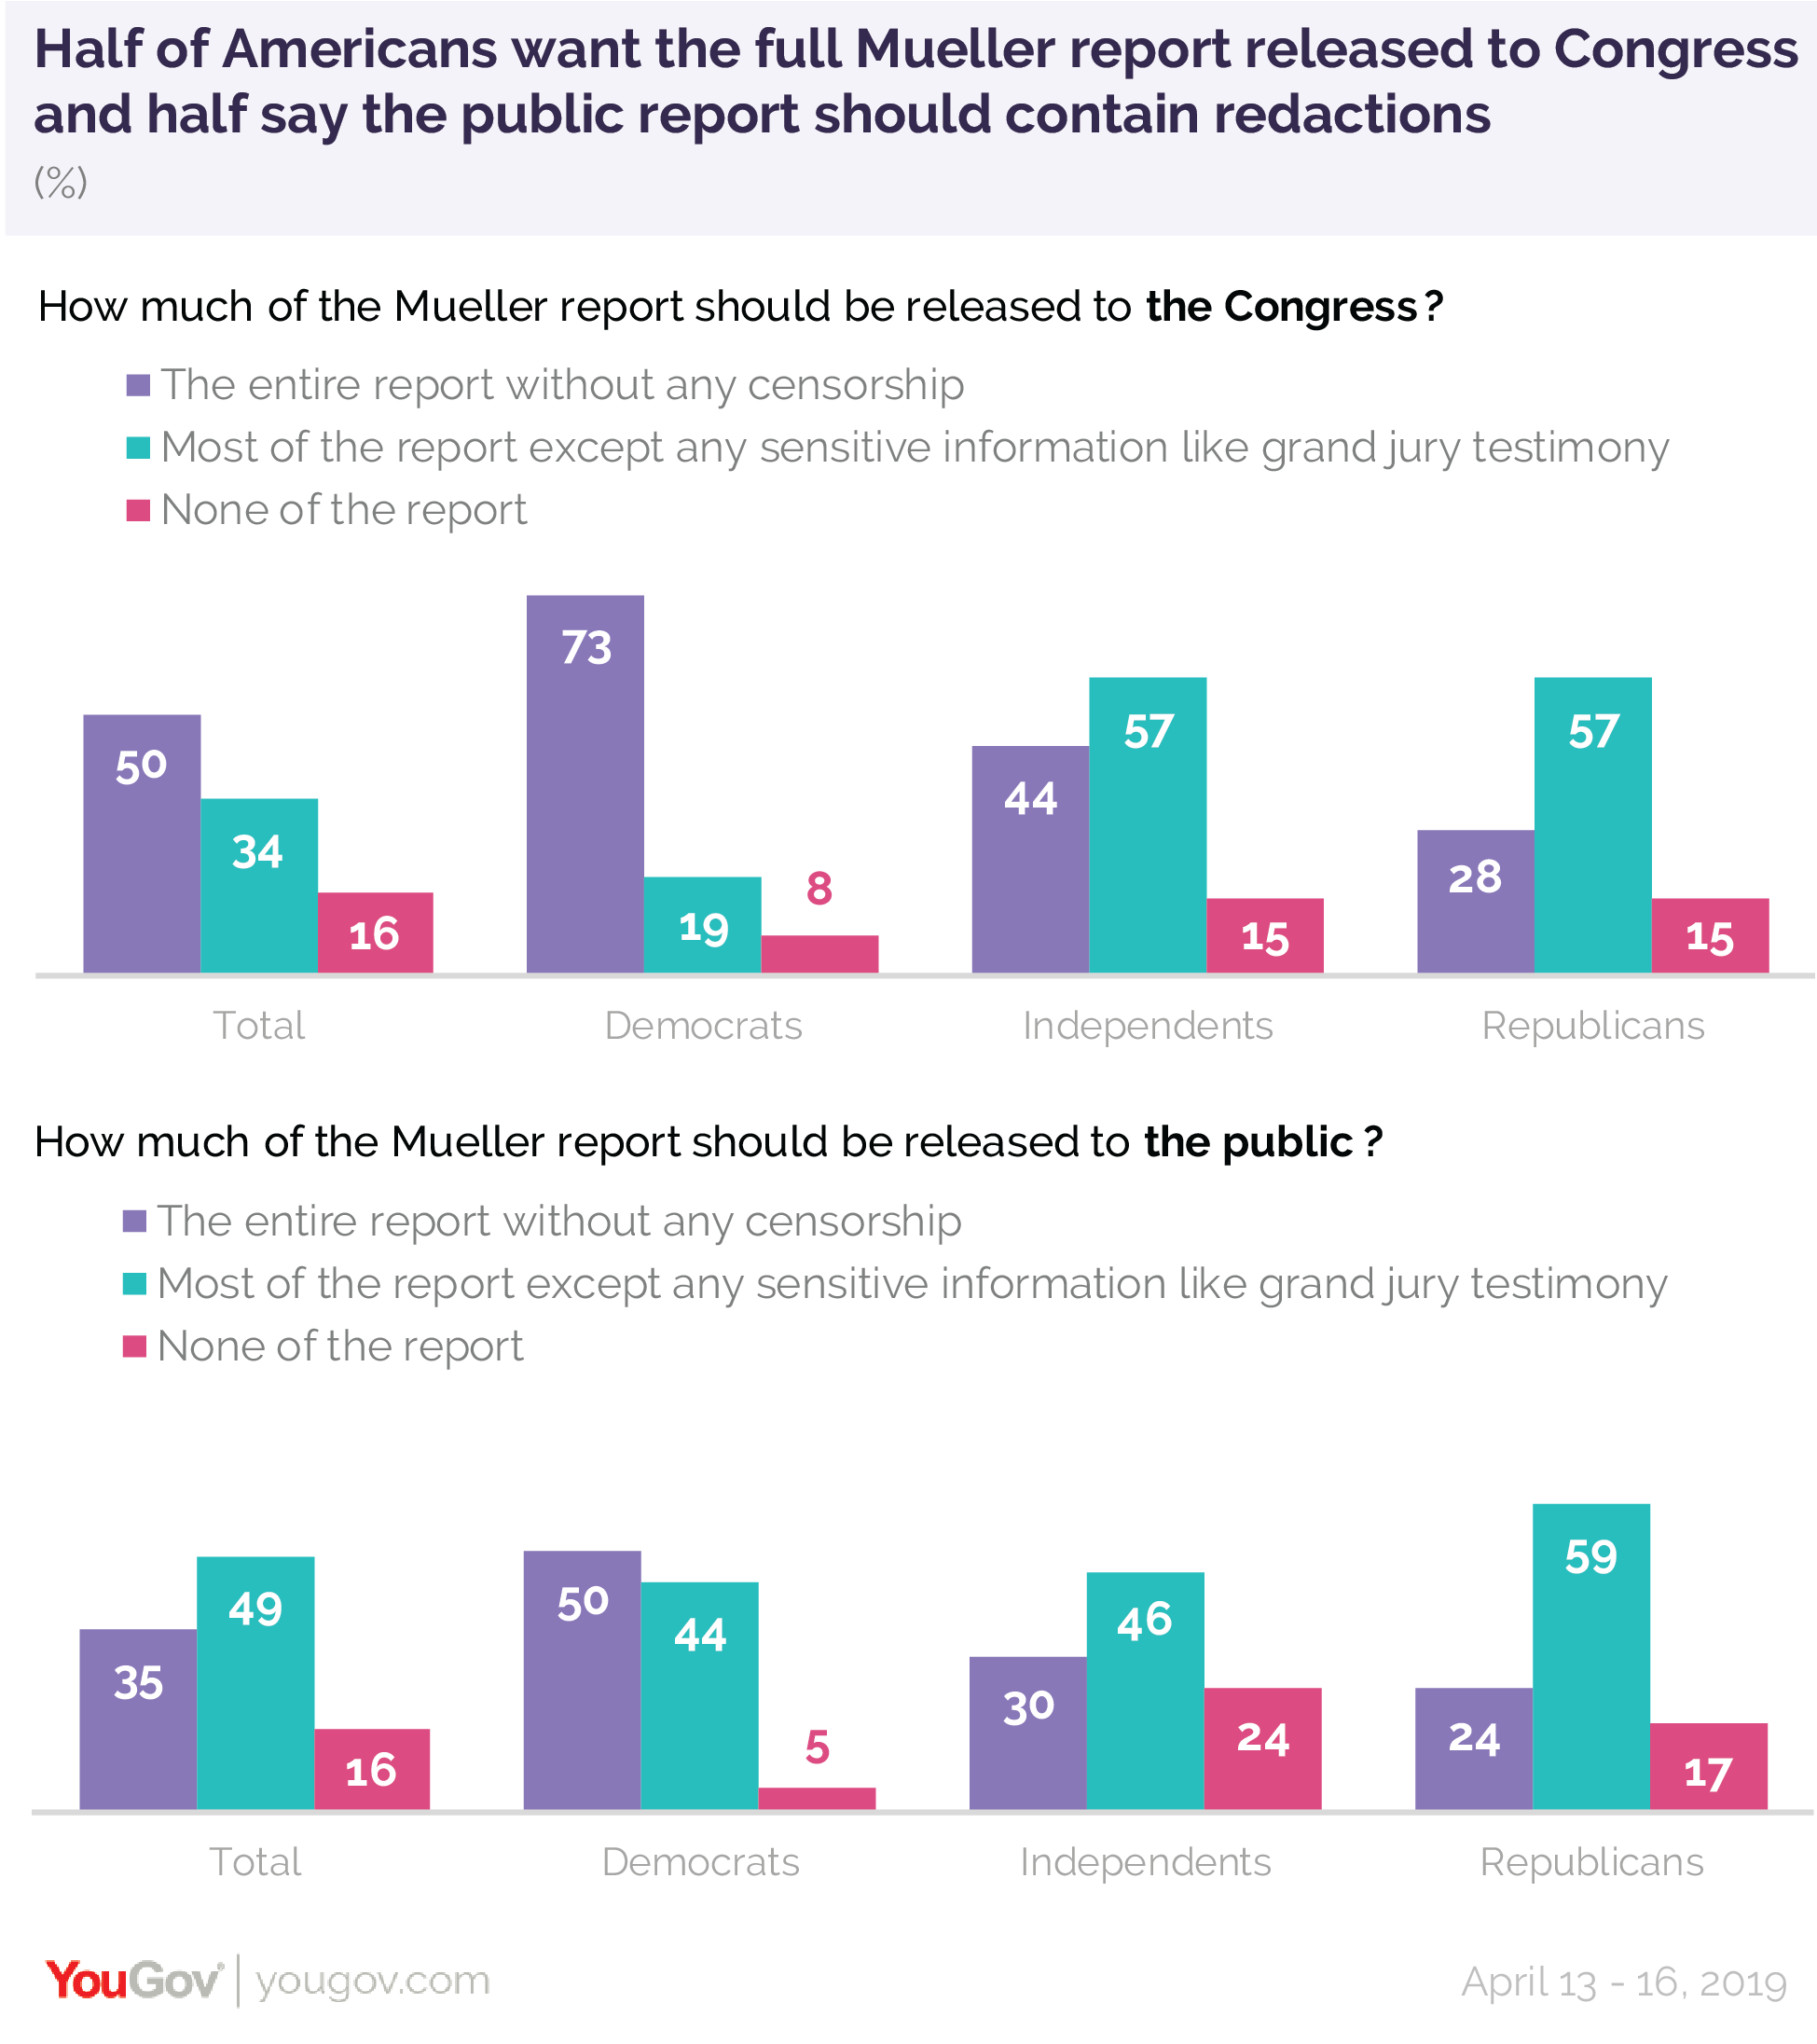 Half of Americans want the full Mueller report released to Congress and half say the public report should contain redactions